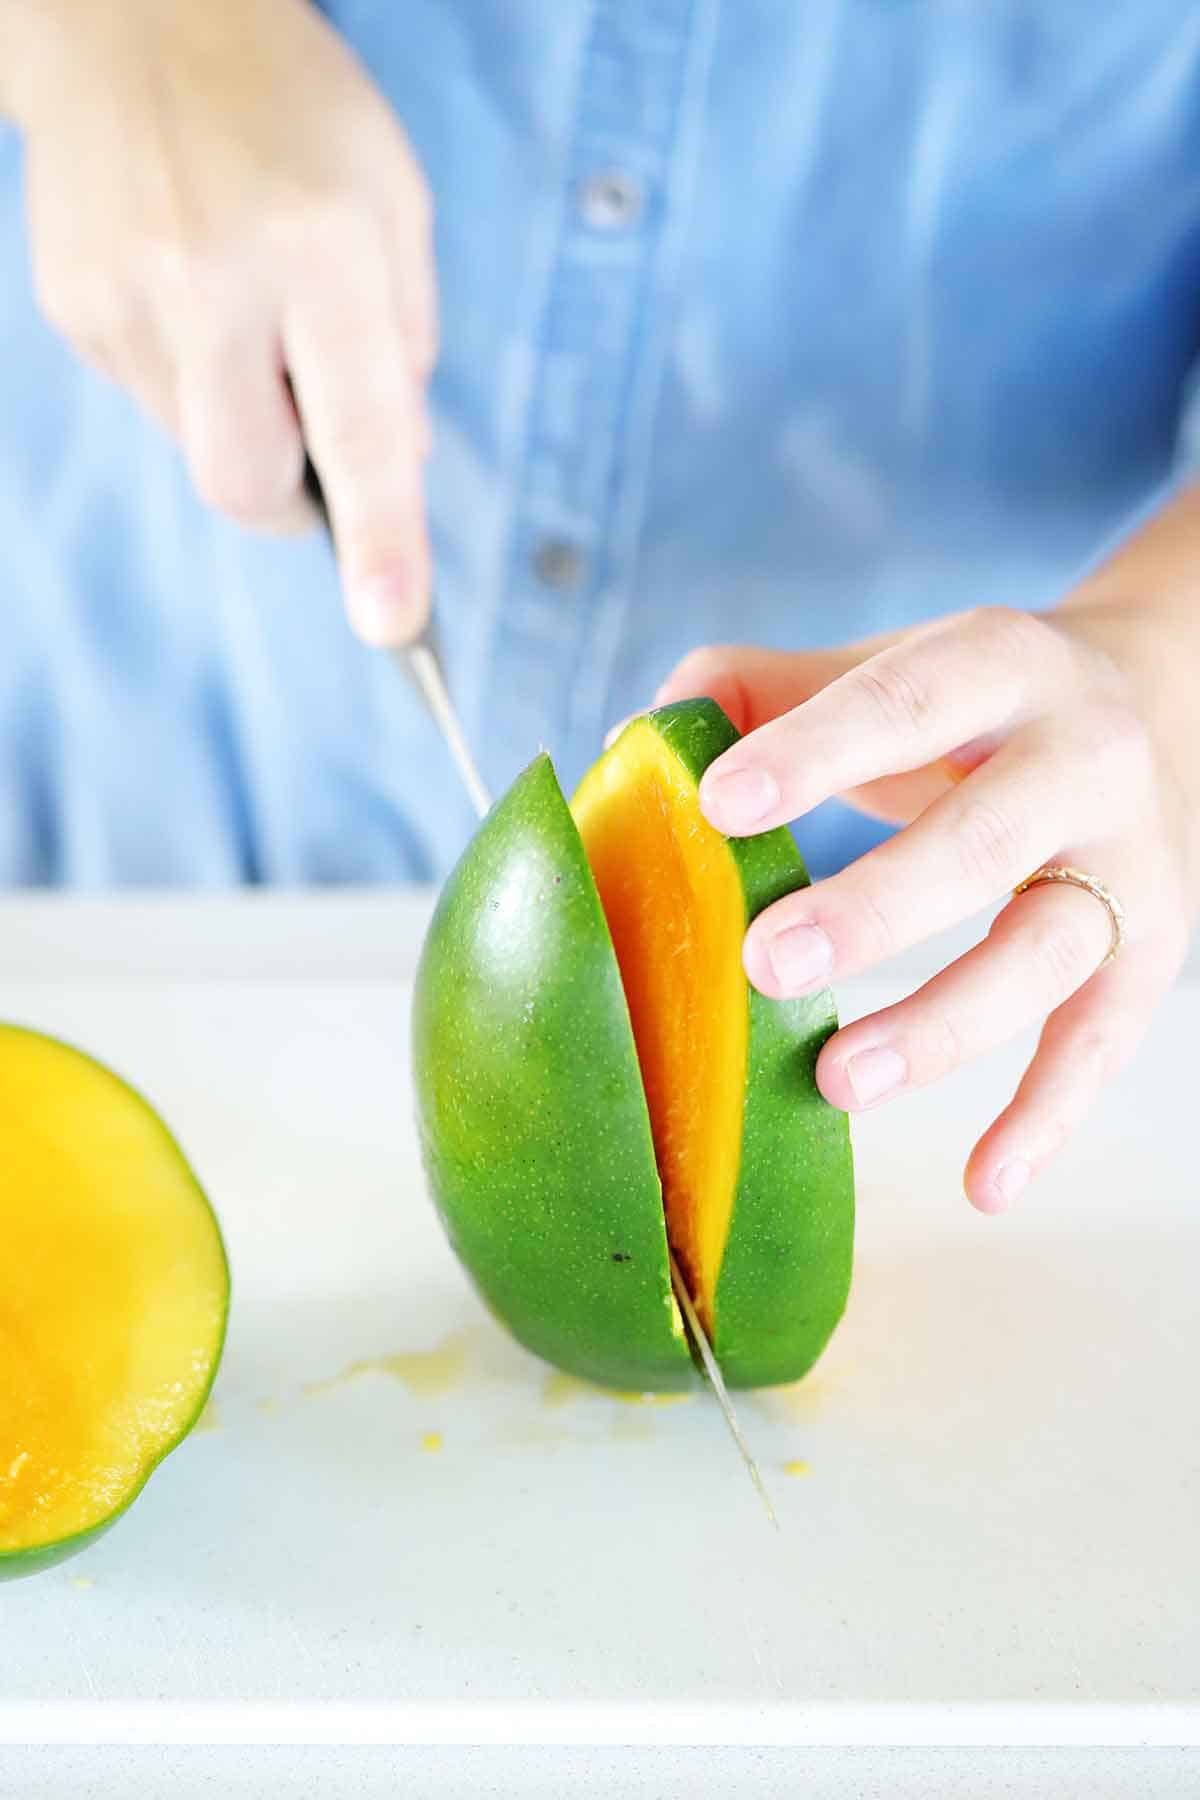 Slicing the sides off a mango